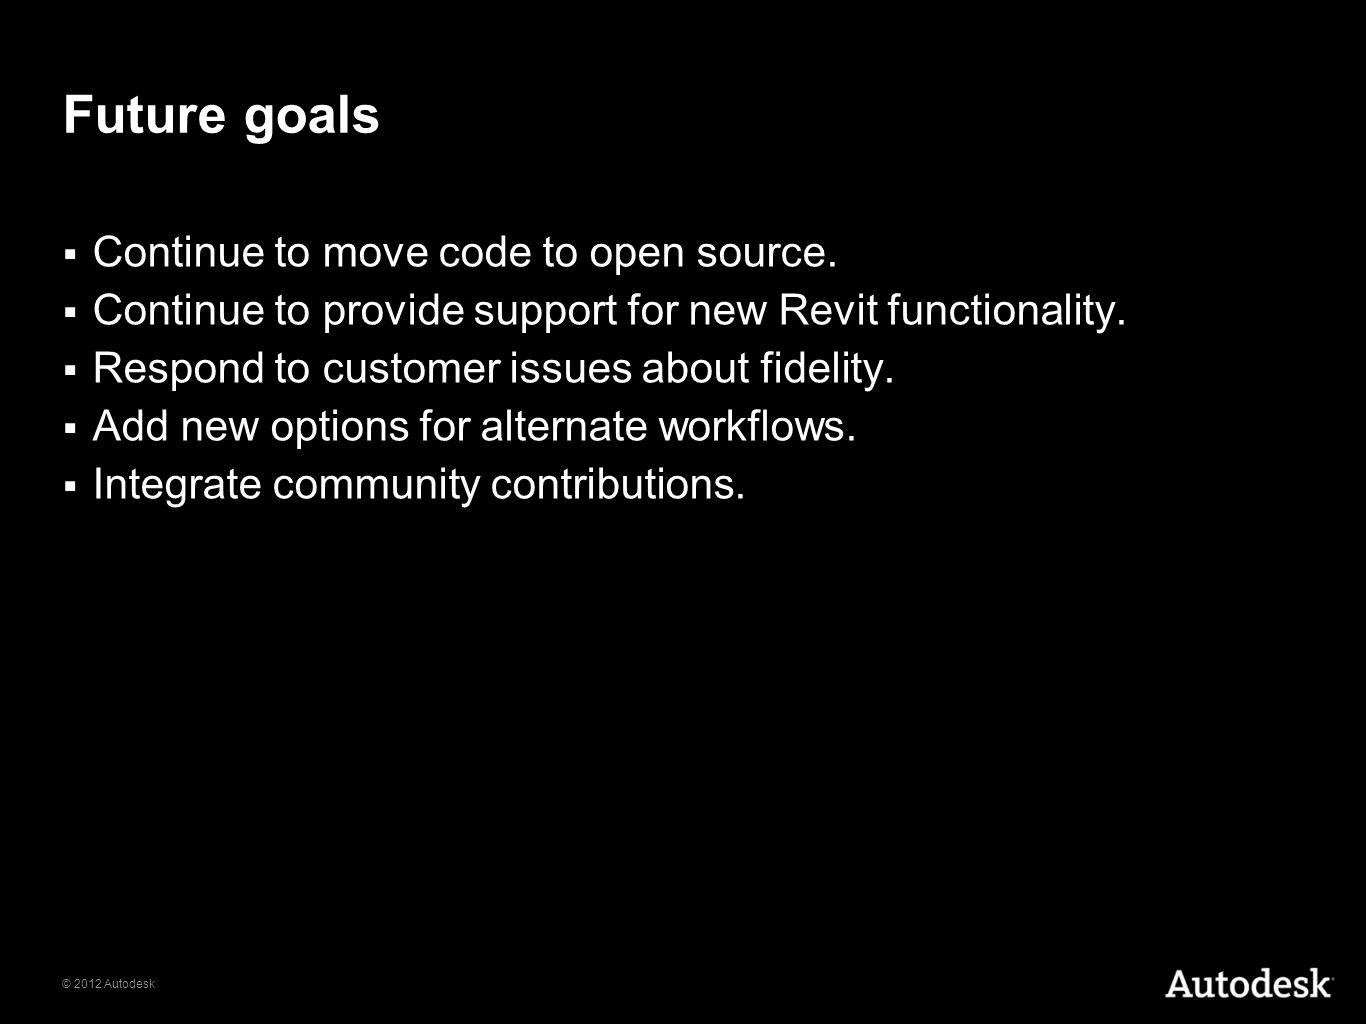 © 2012 Autodesk Future goals Continue to move code to open source. Continue to provide support for new Revit functionality. Respond to customer issues